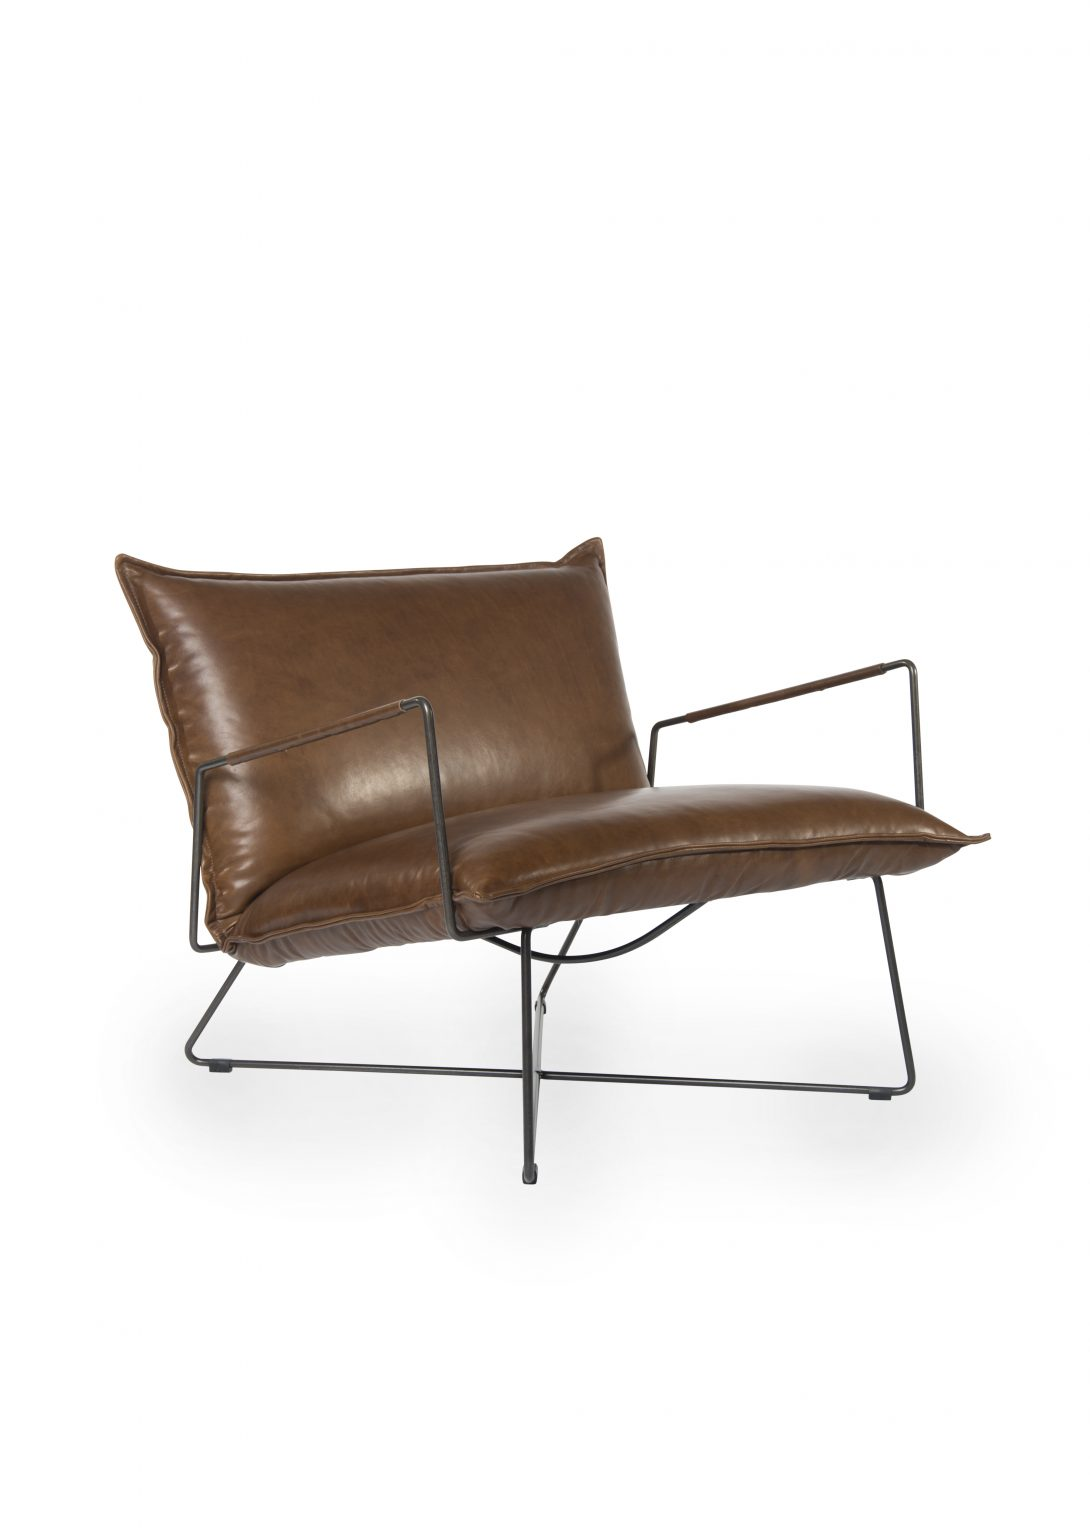 Biennale Interieur - Belgium's leading design and interior event - Earl-armchair-with-arm-old-glory-frame-luxor-fango-oblique-2.jpg